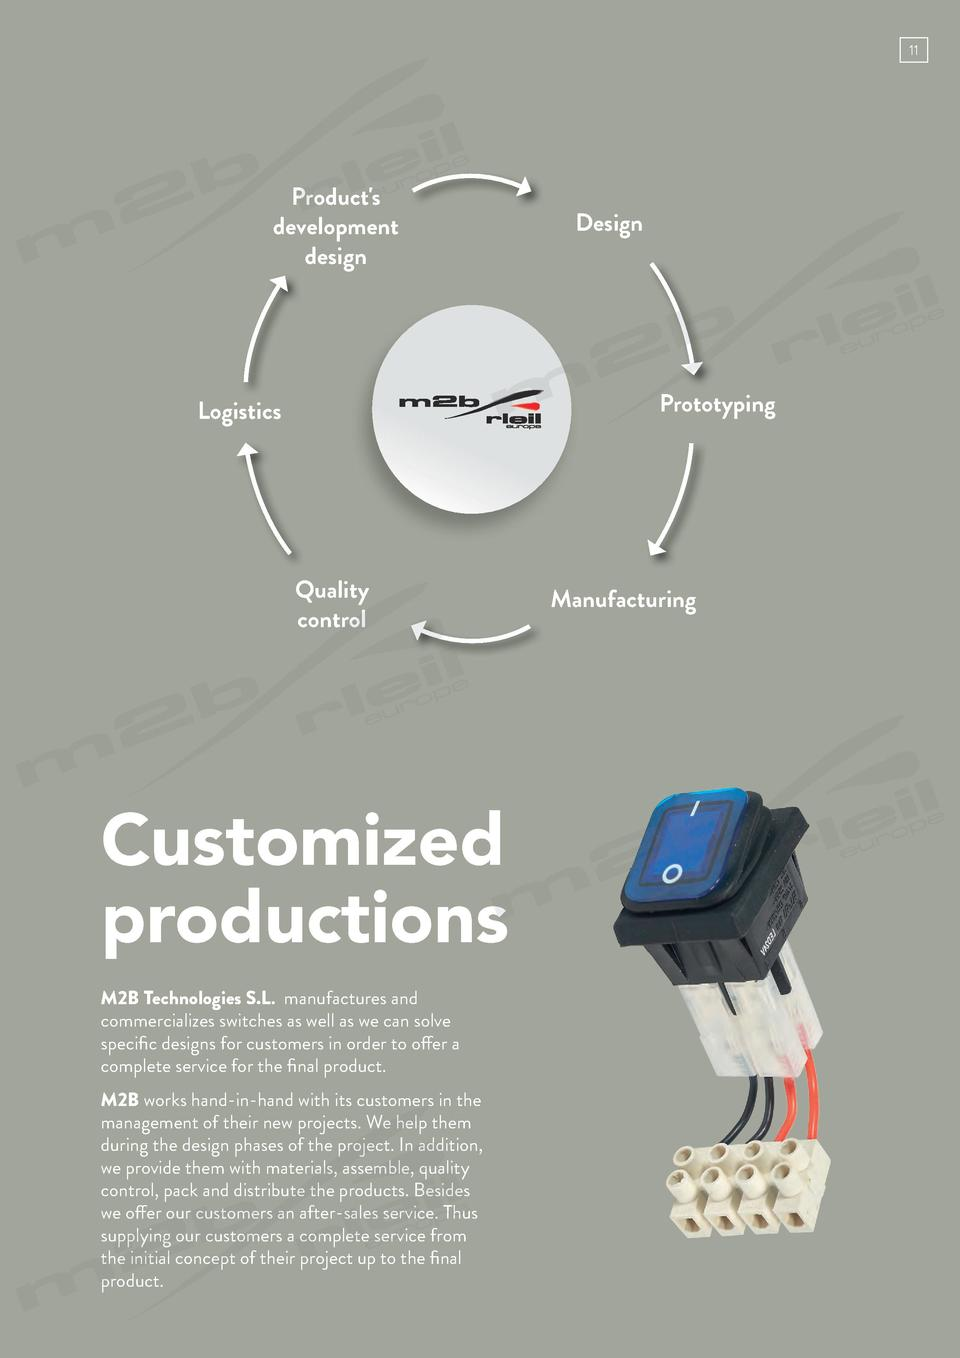 11  Product s development design  Design  Prototyping  Logistics  Quality control  Customized productions M2B Technologies...